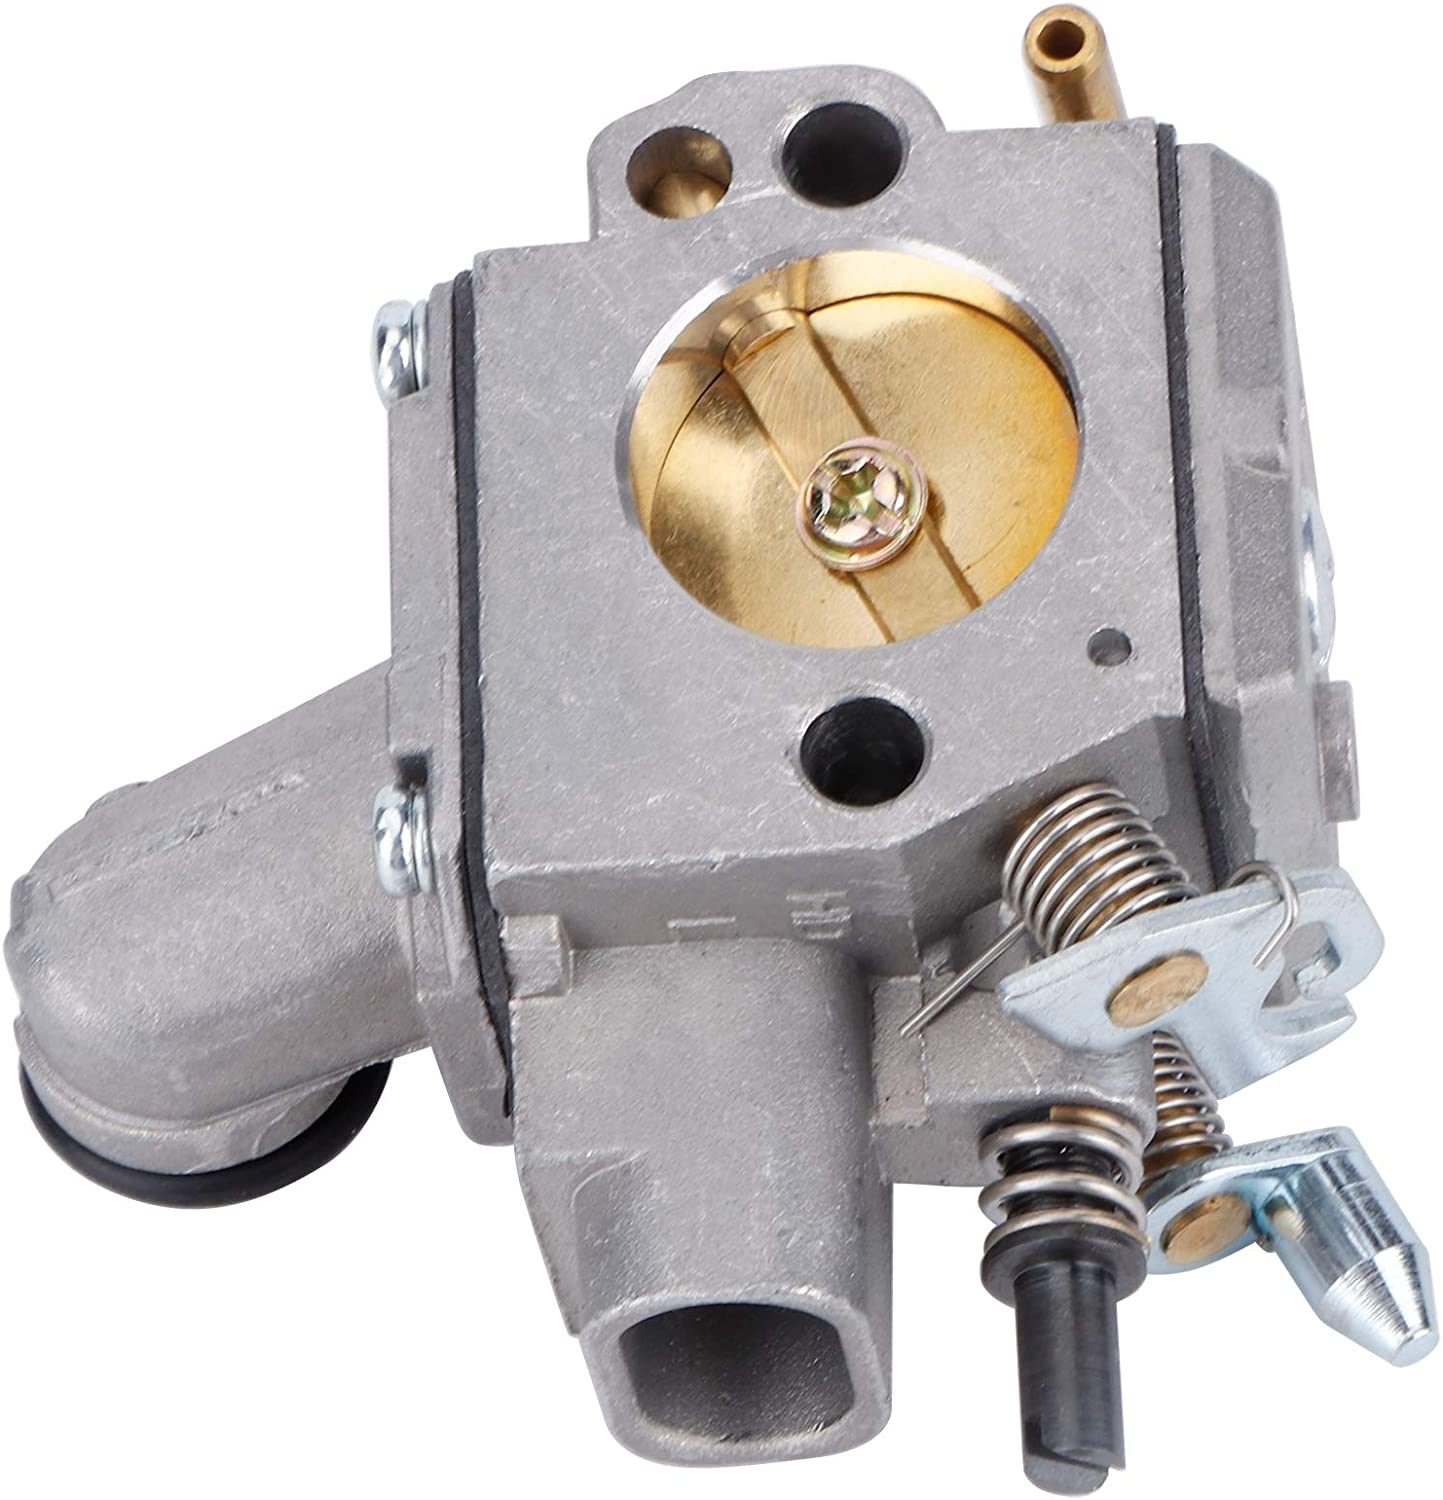 High Precision Engine Carburetor Gasoline Engine Carburetor Aluminum Carburetor Carb Replacement Fit for STIHL MS341 MS361 Chainsaw Parts